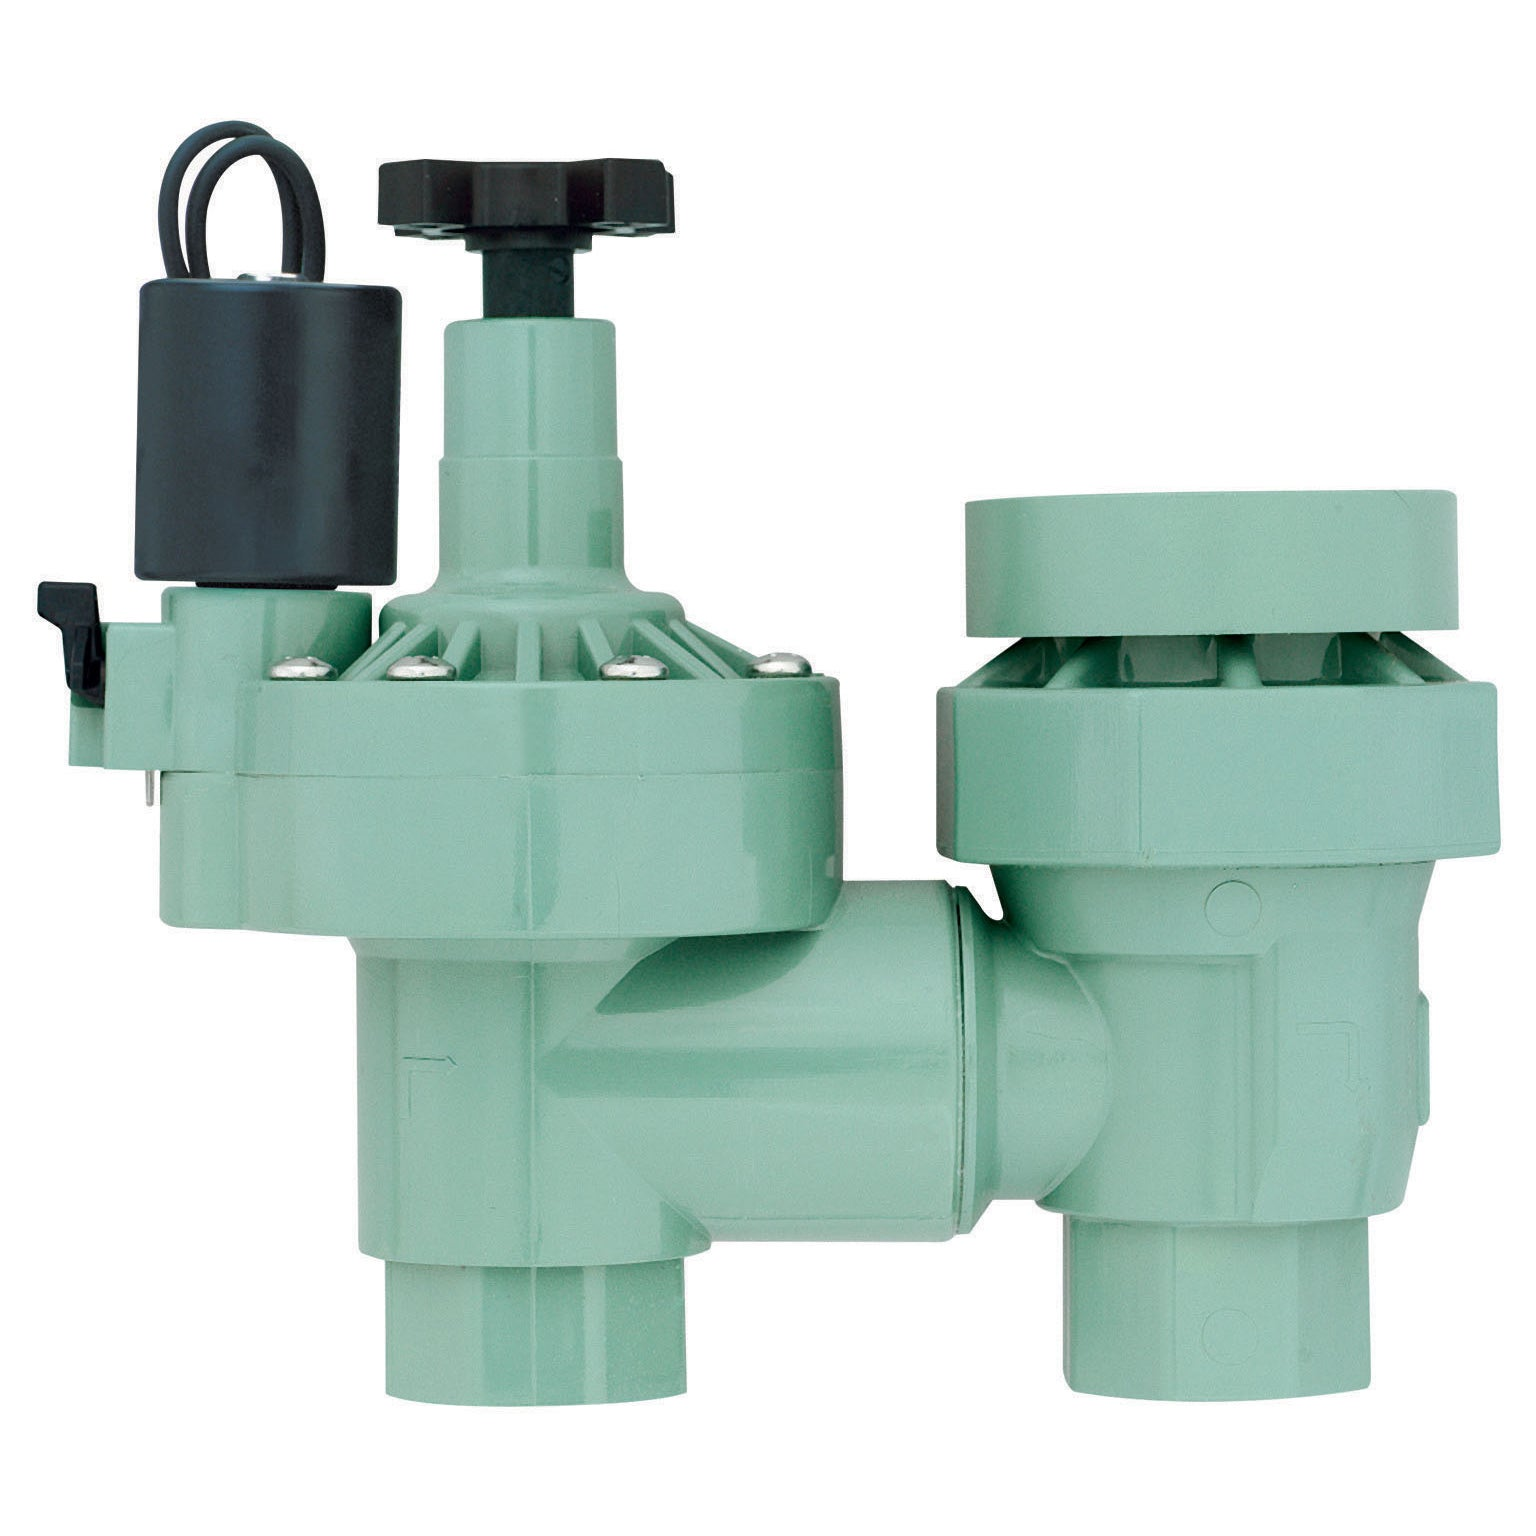 Orbit 57624 1-inch Electric Anti-Siphon Valve (Sprinkler ...